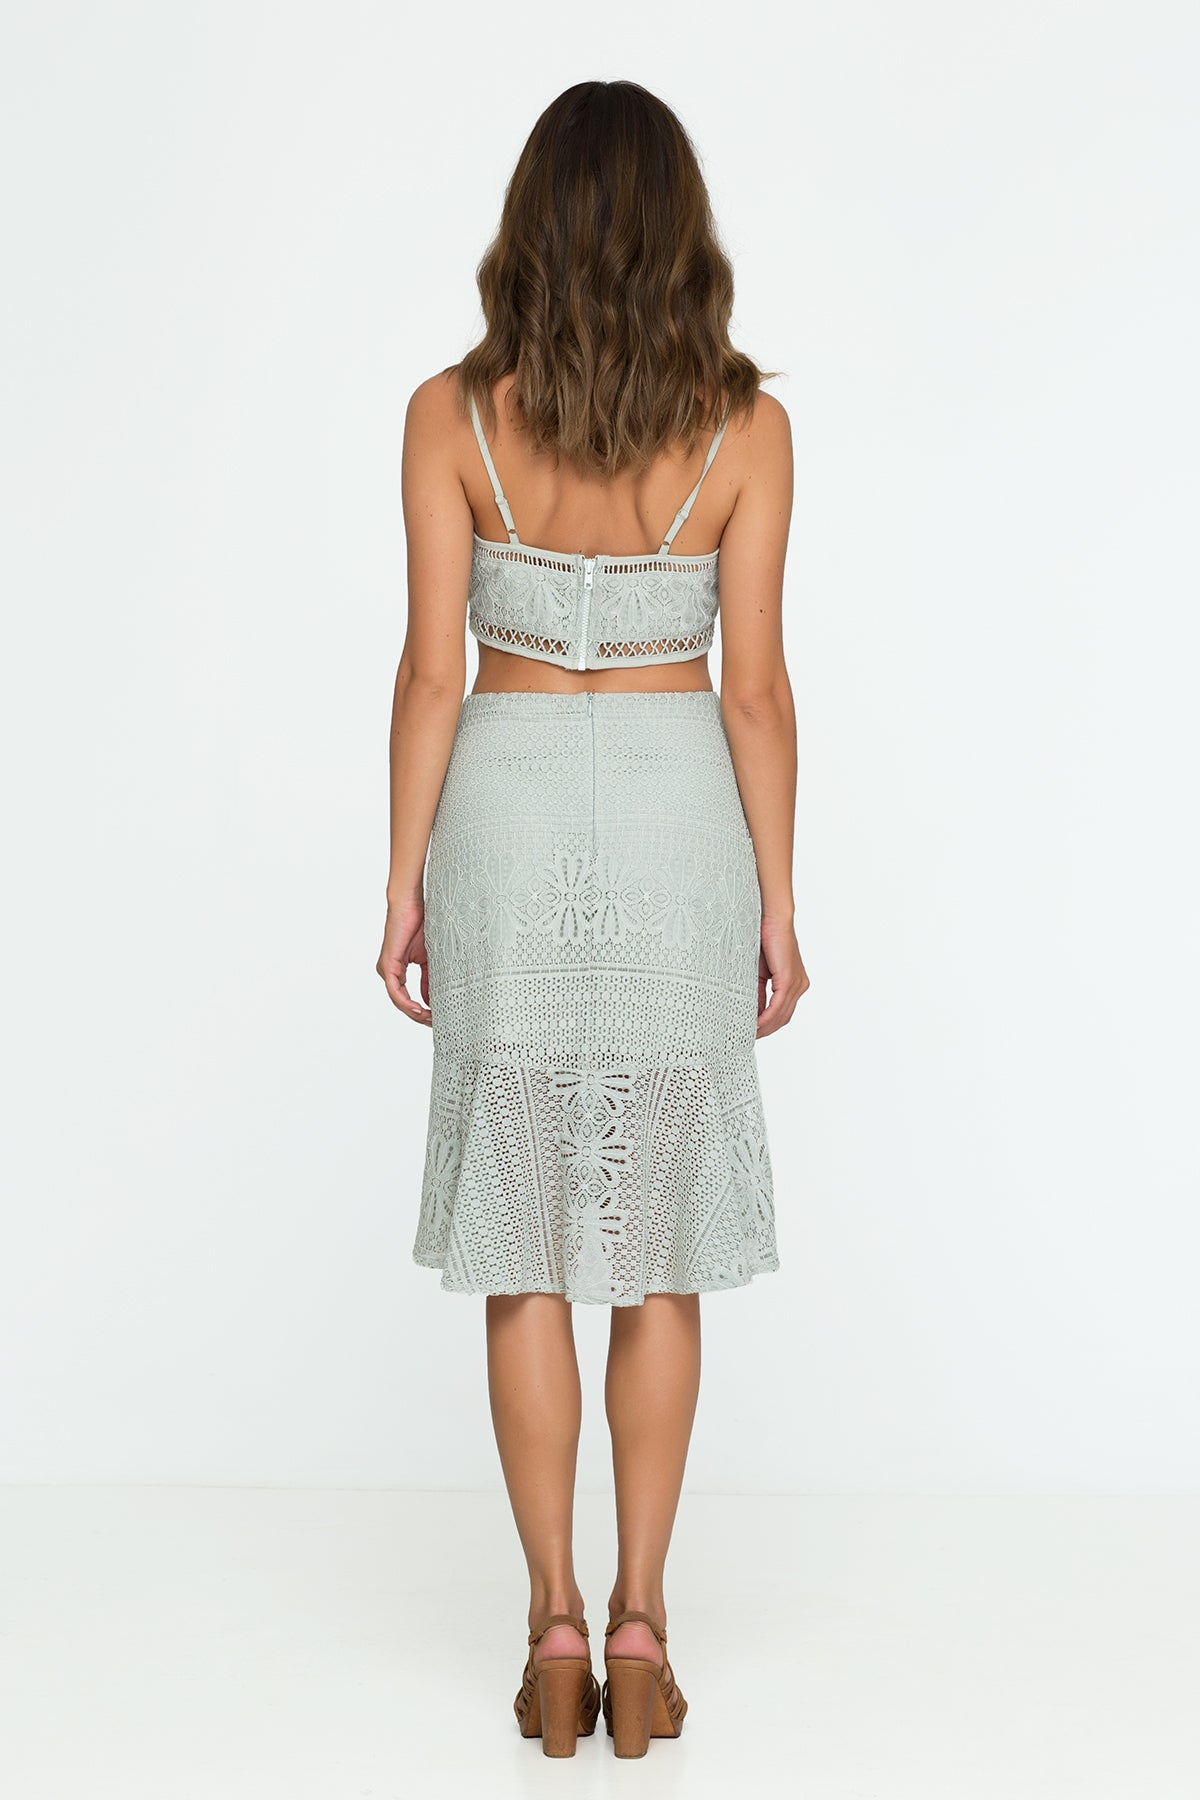 Lace Skirt Pastel Green Sage Office Pencil Skirt